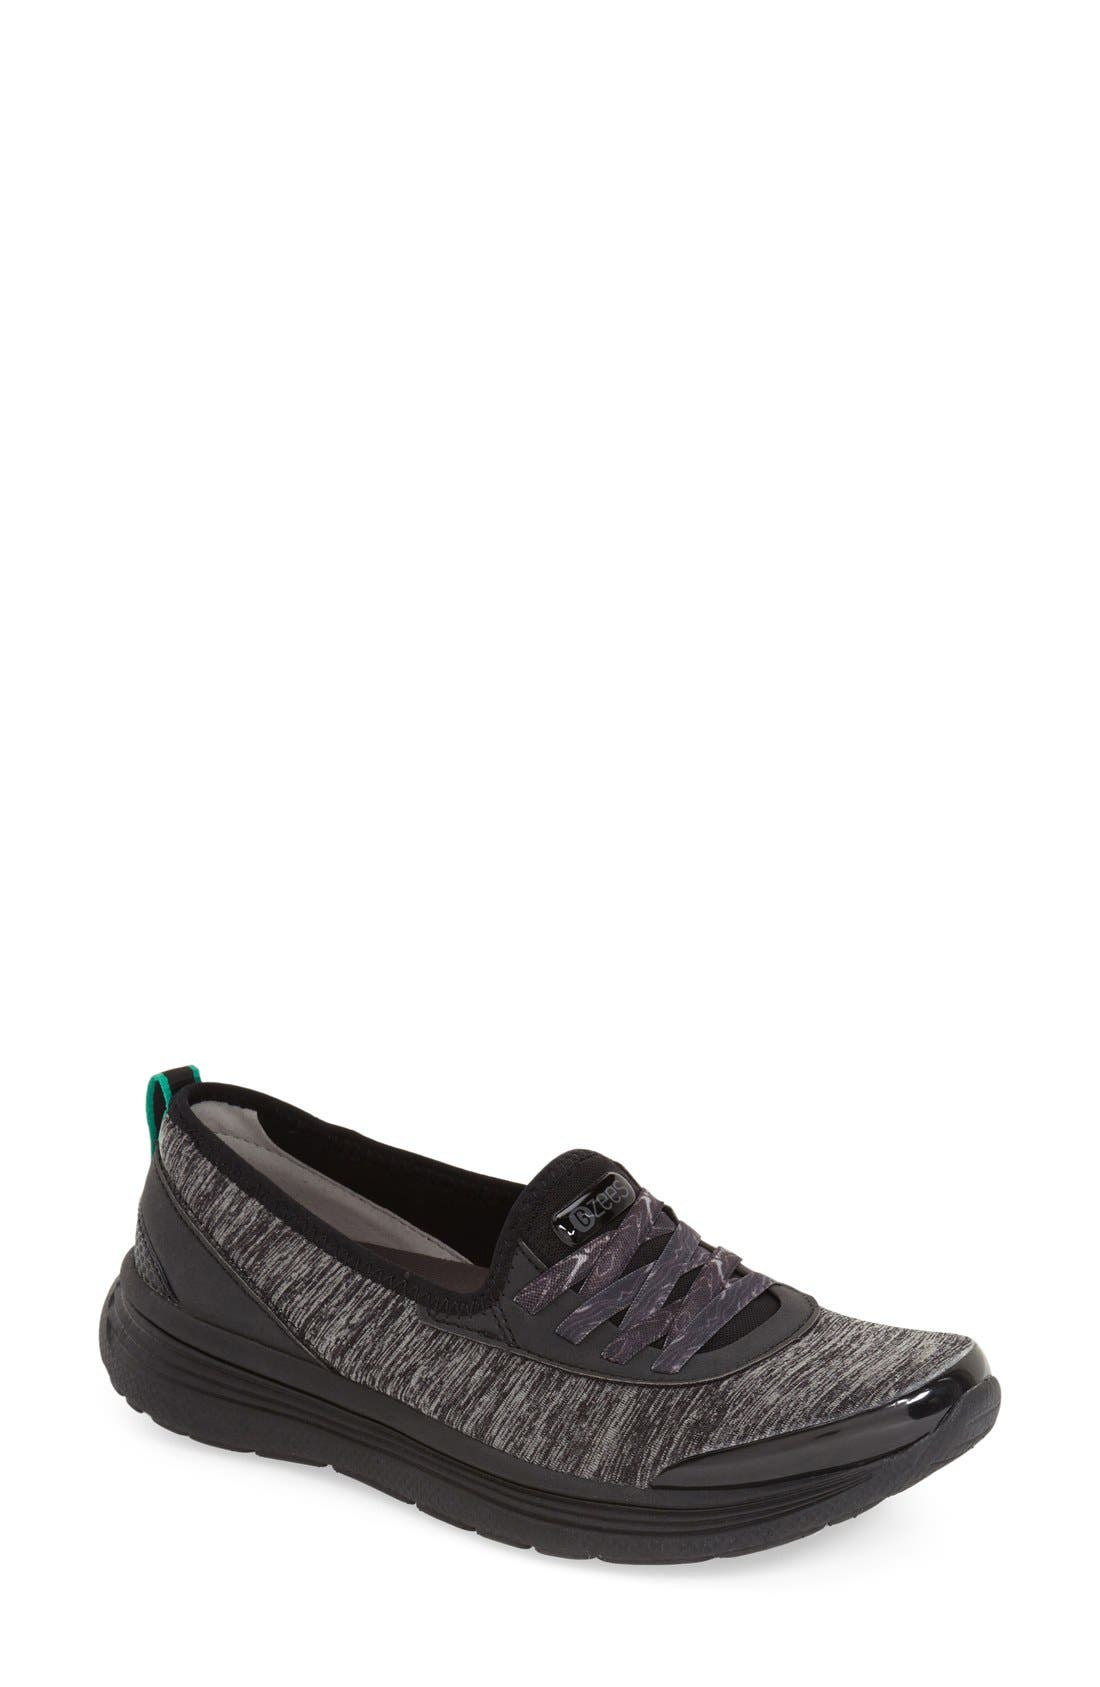 Sea Dogs Wink Water Friendly Sneaker,                             Main thumbnail 1, color,                             001